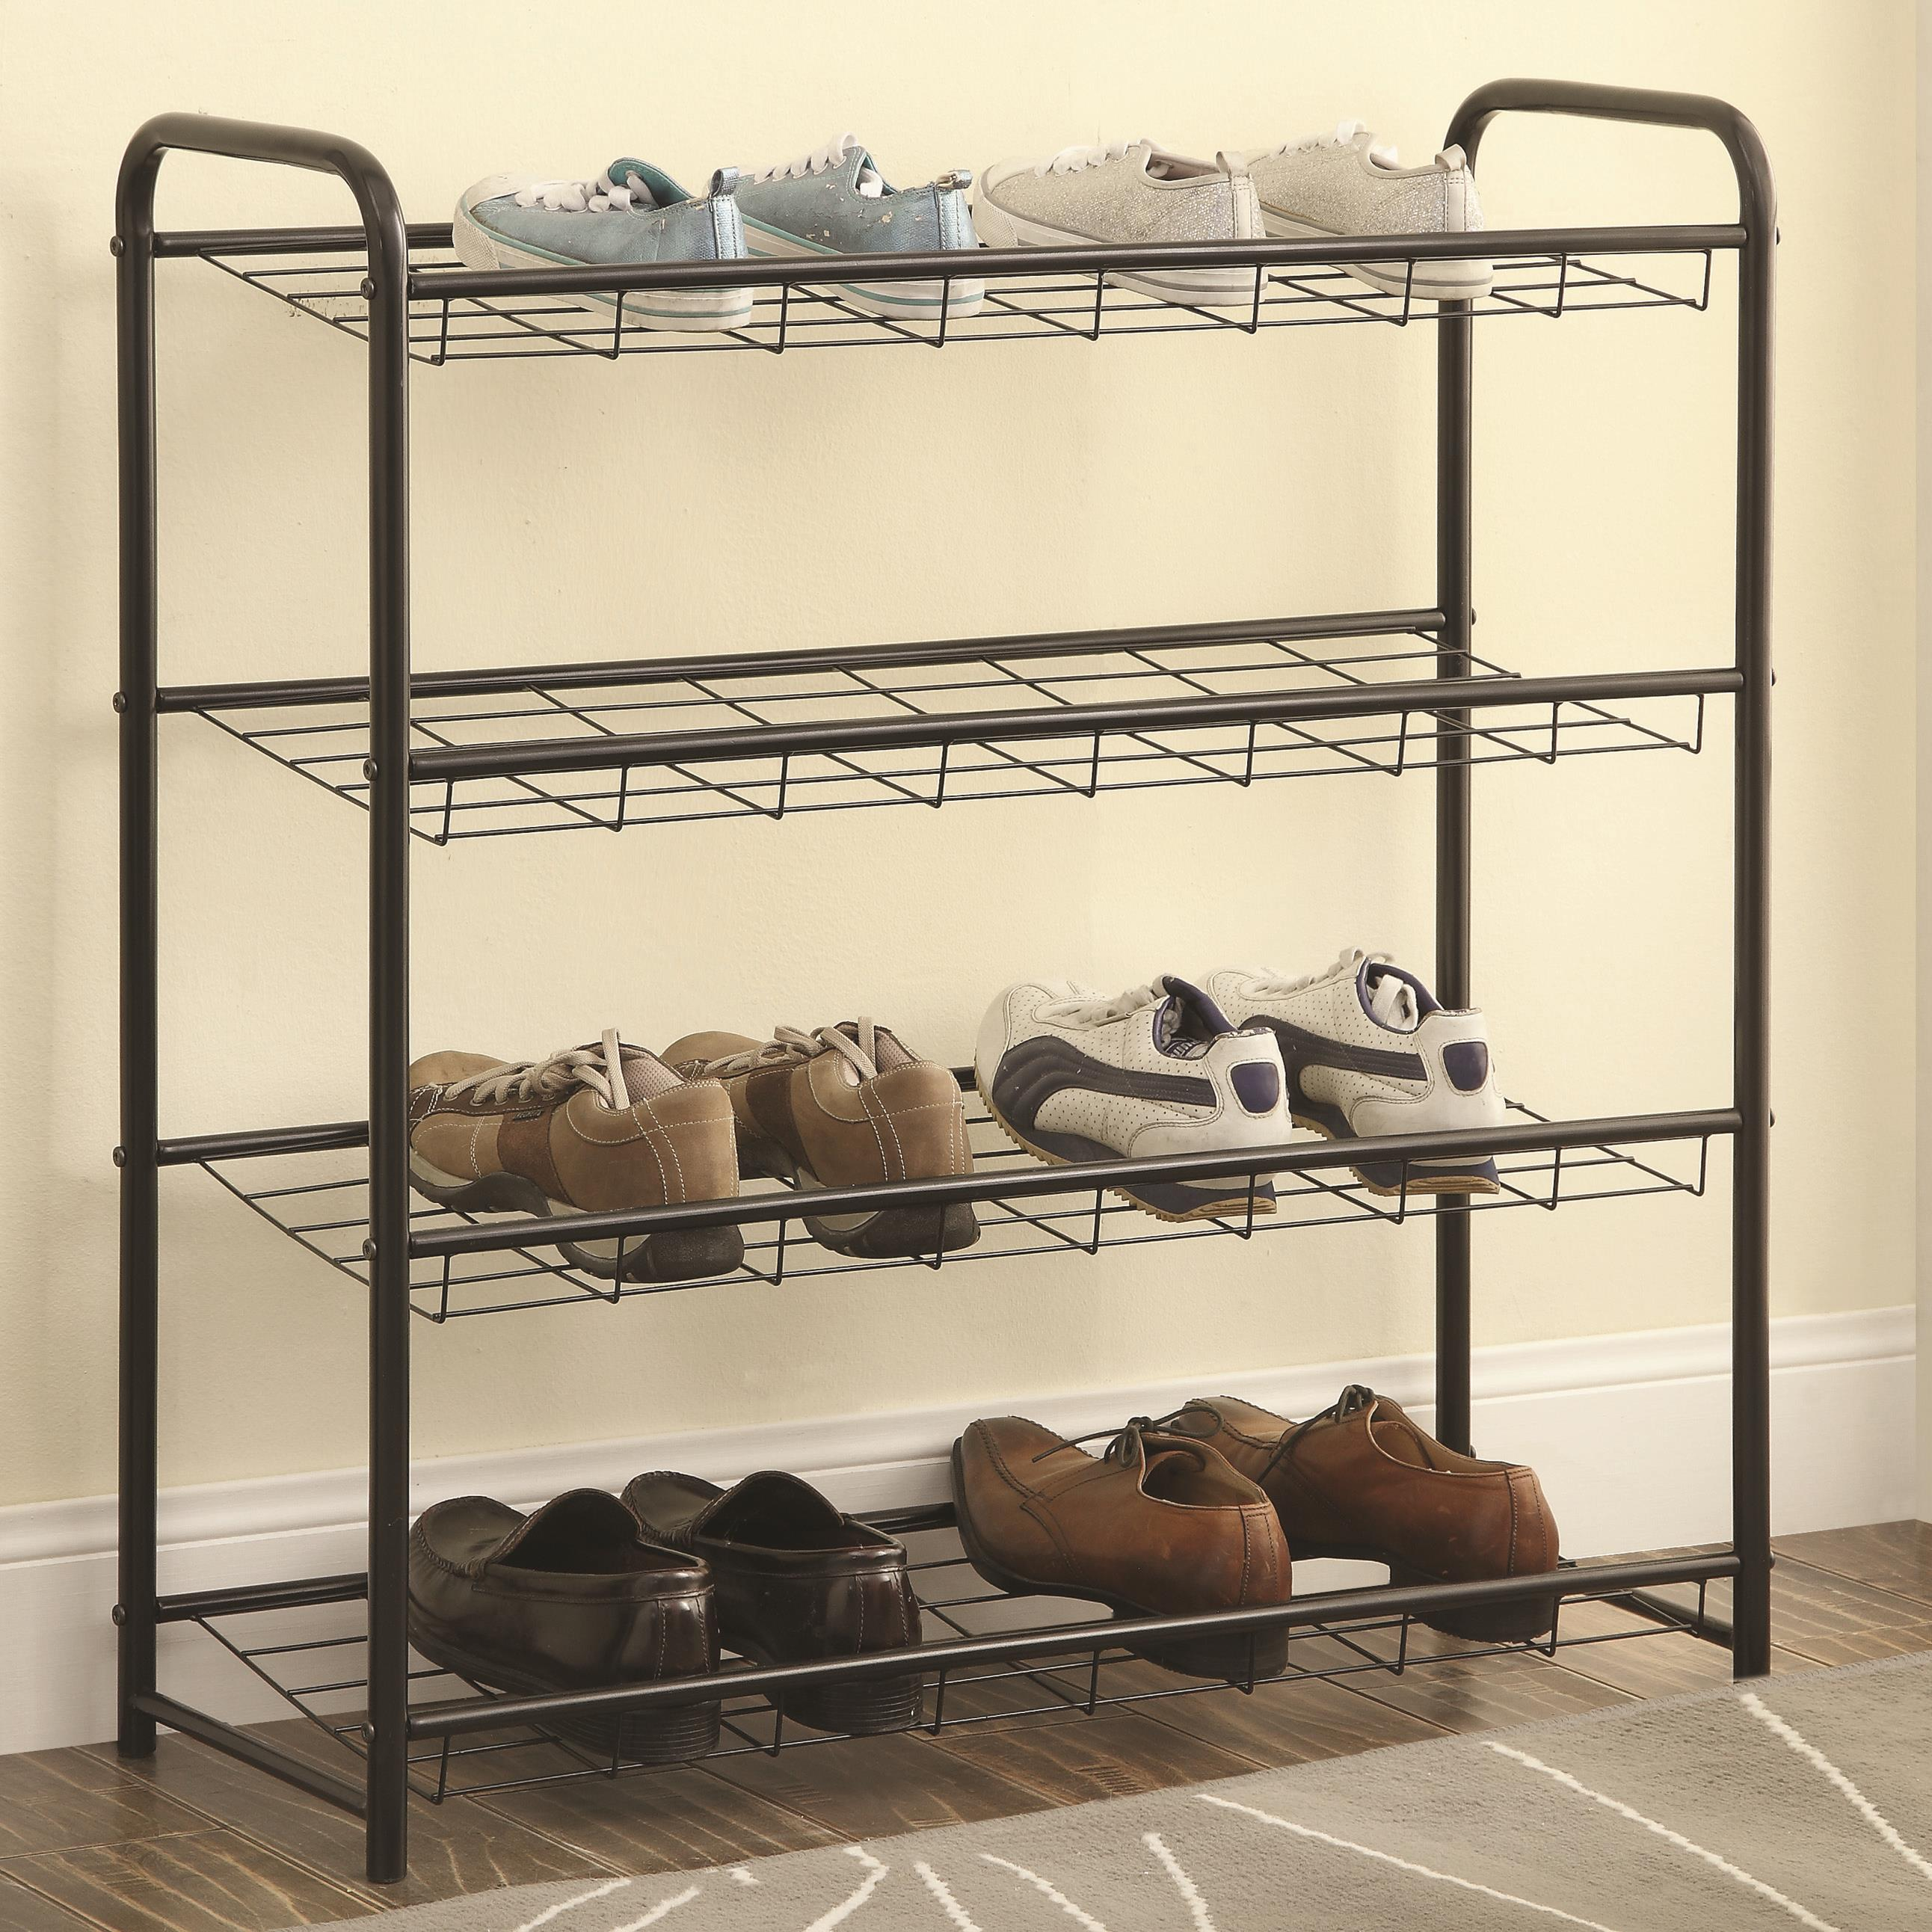 Coaster Accent Racks Shoe Rack - Item Number: 950031